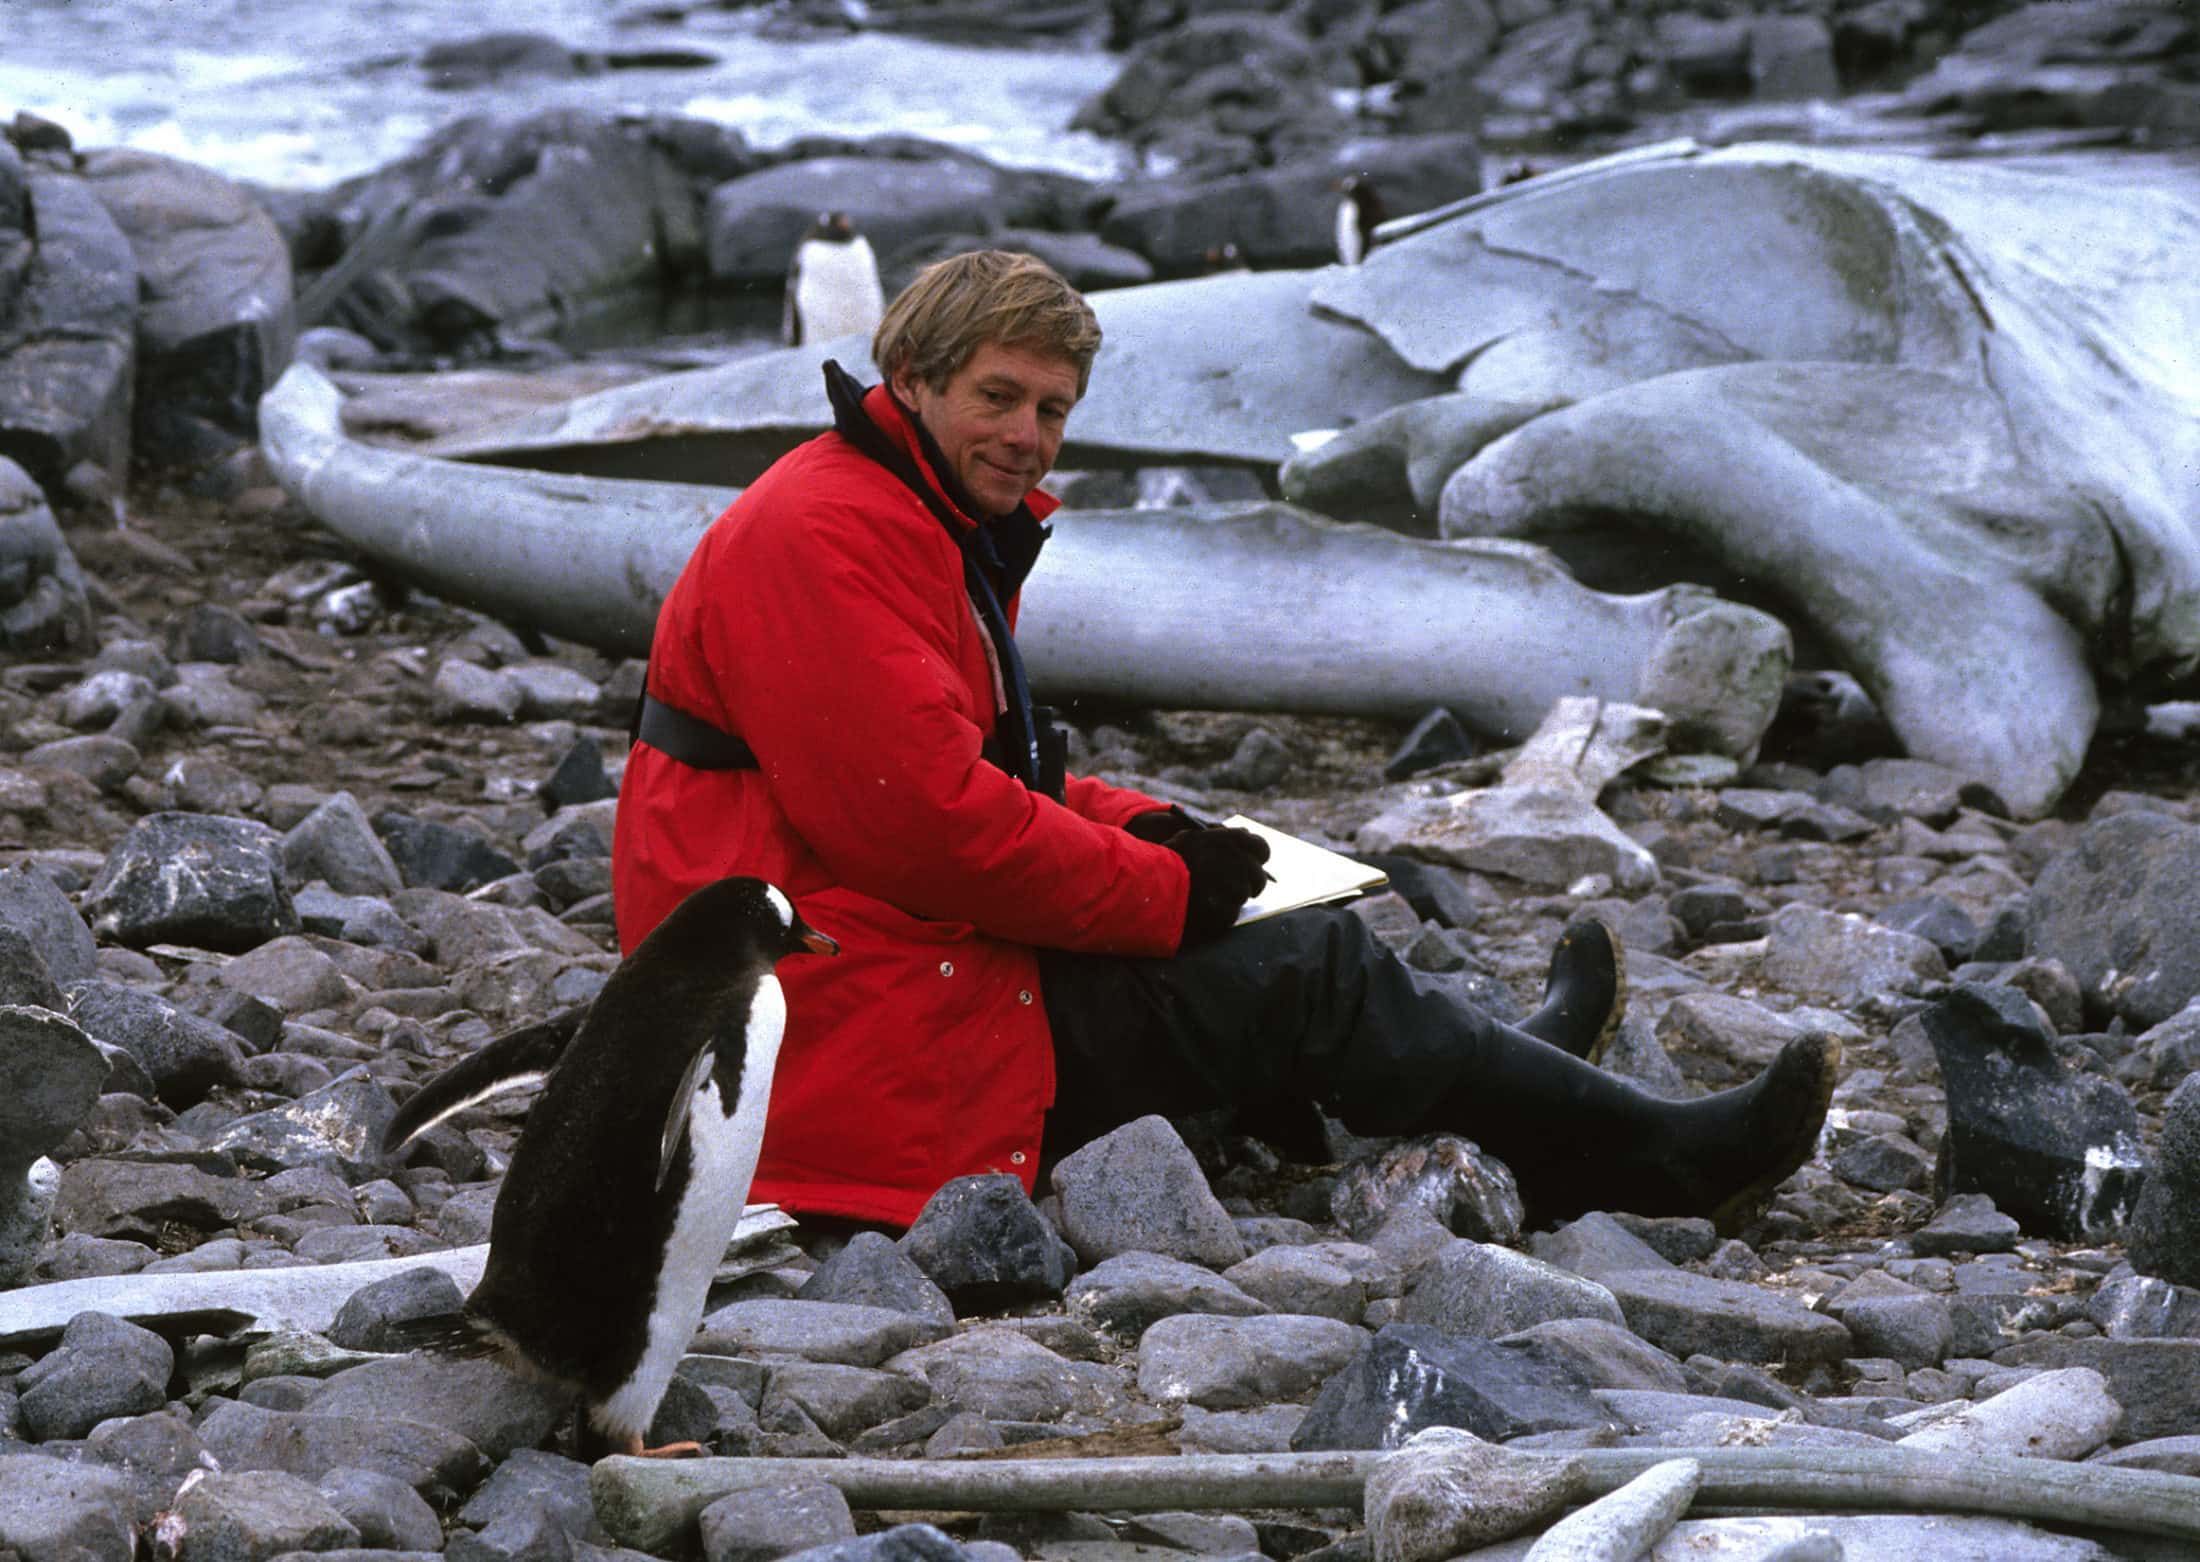 Robert Bateman and penguins, Antarctica